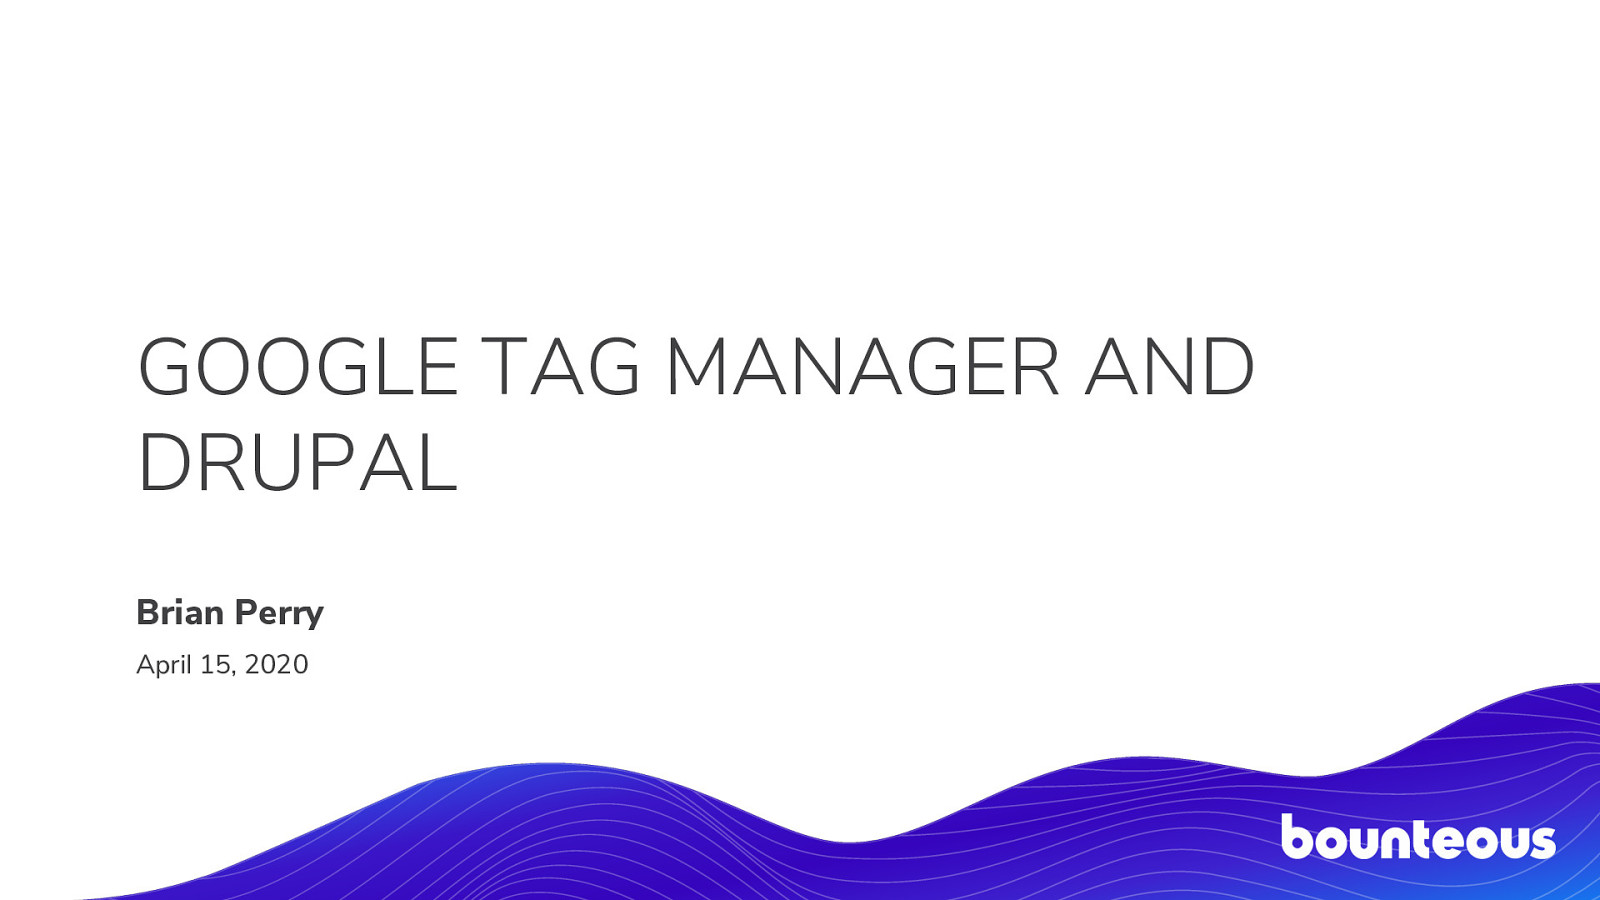 Google Tag Manager and Drupal